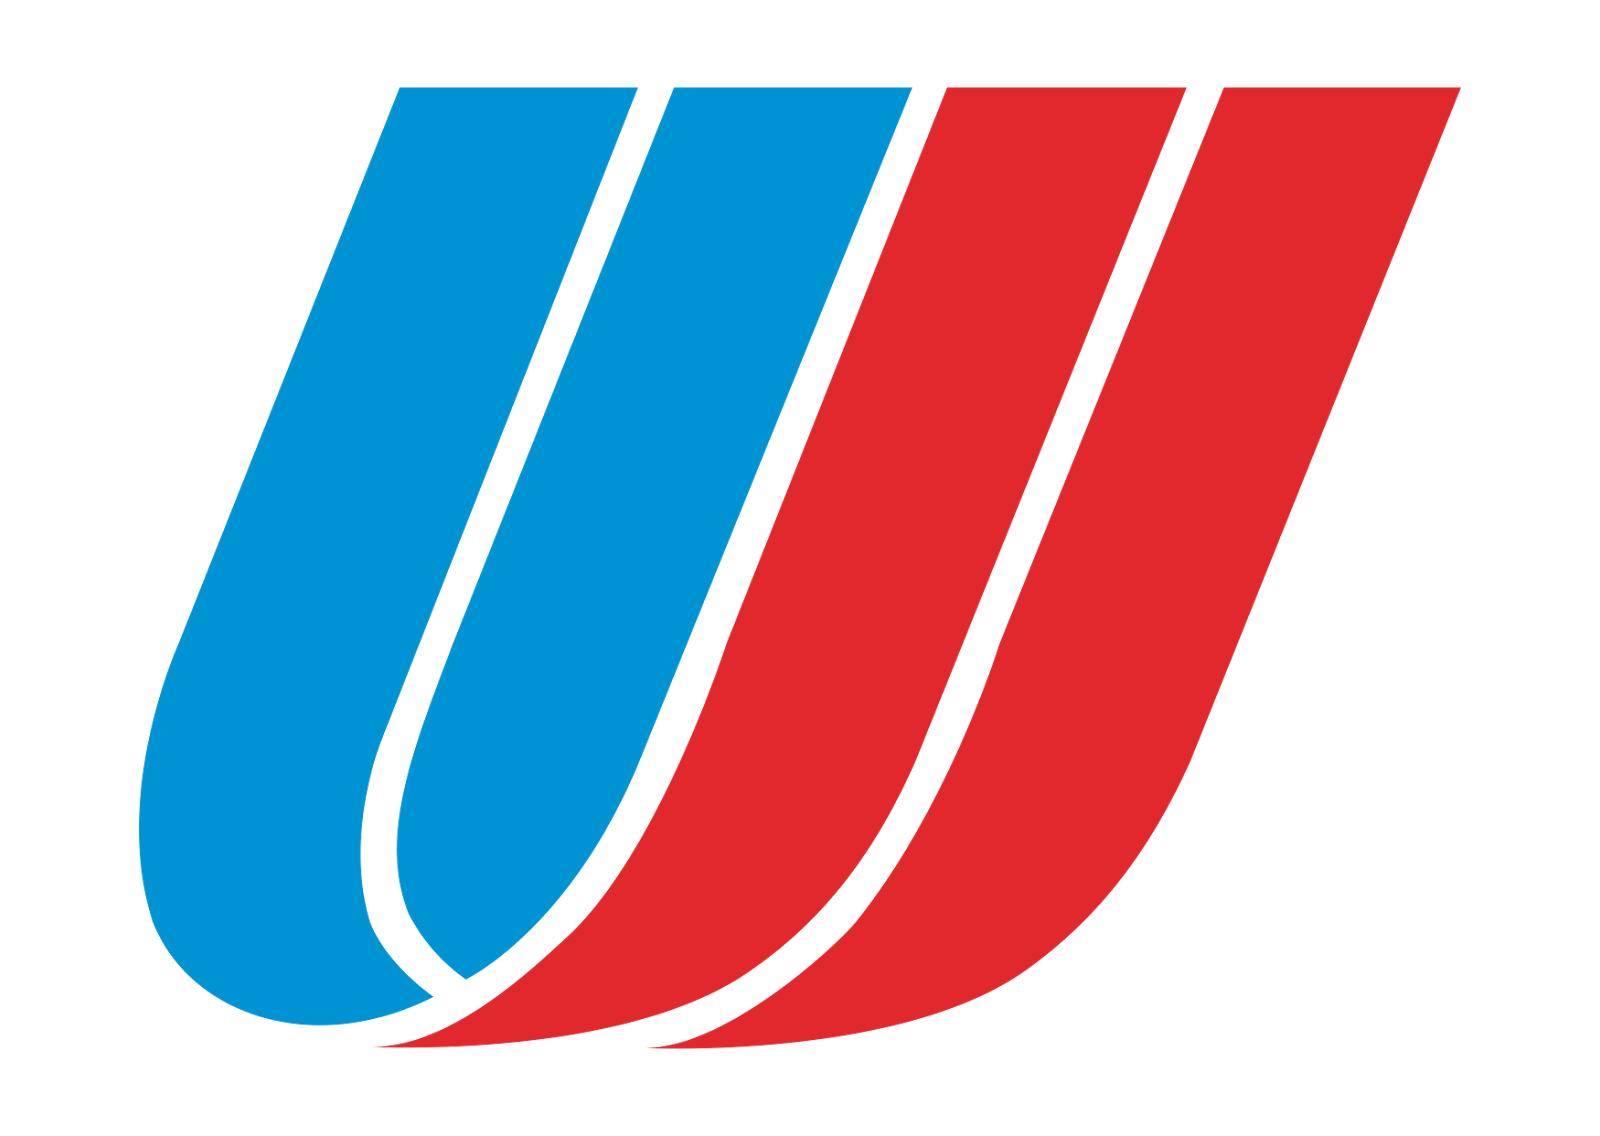 United Airline Logo Red Blue Png 2514 Free